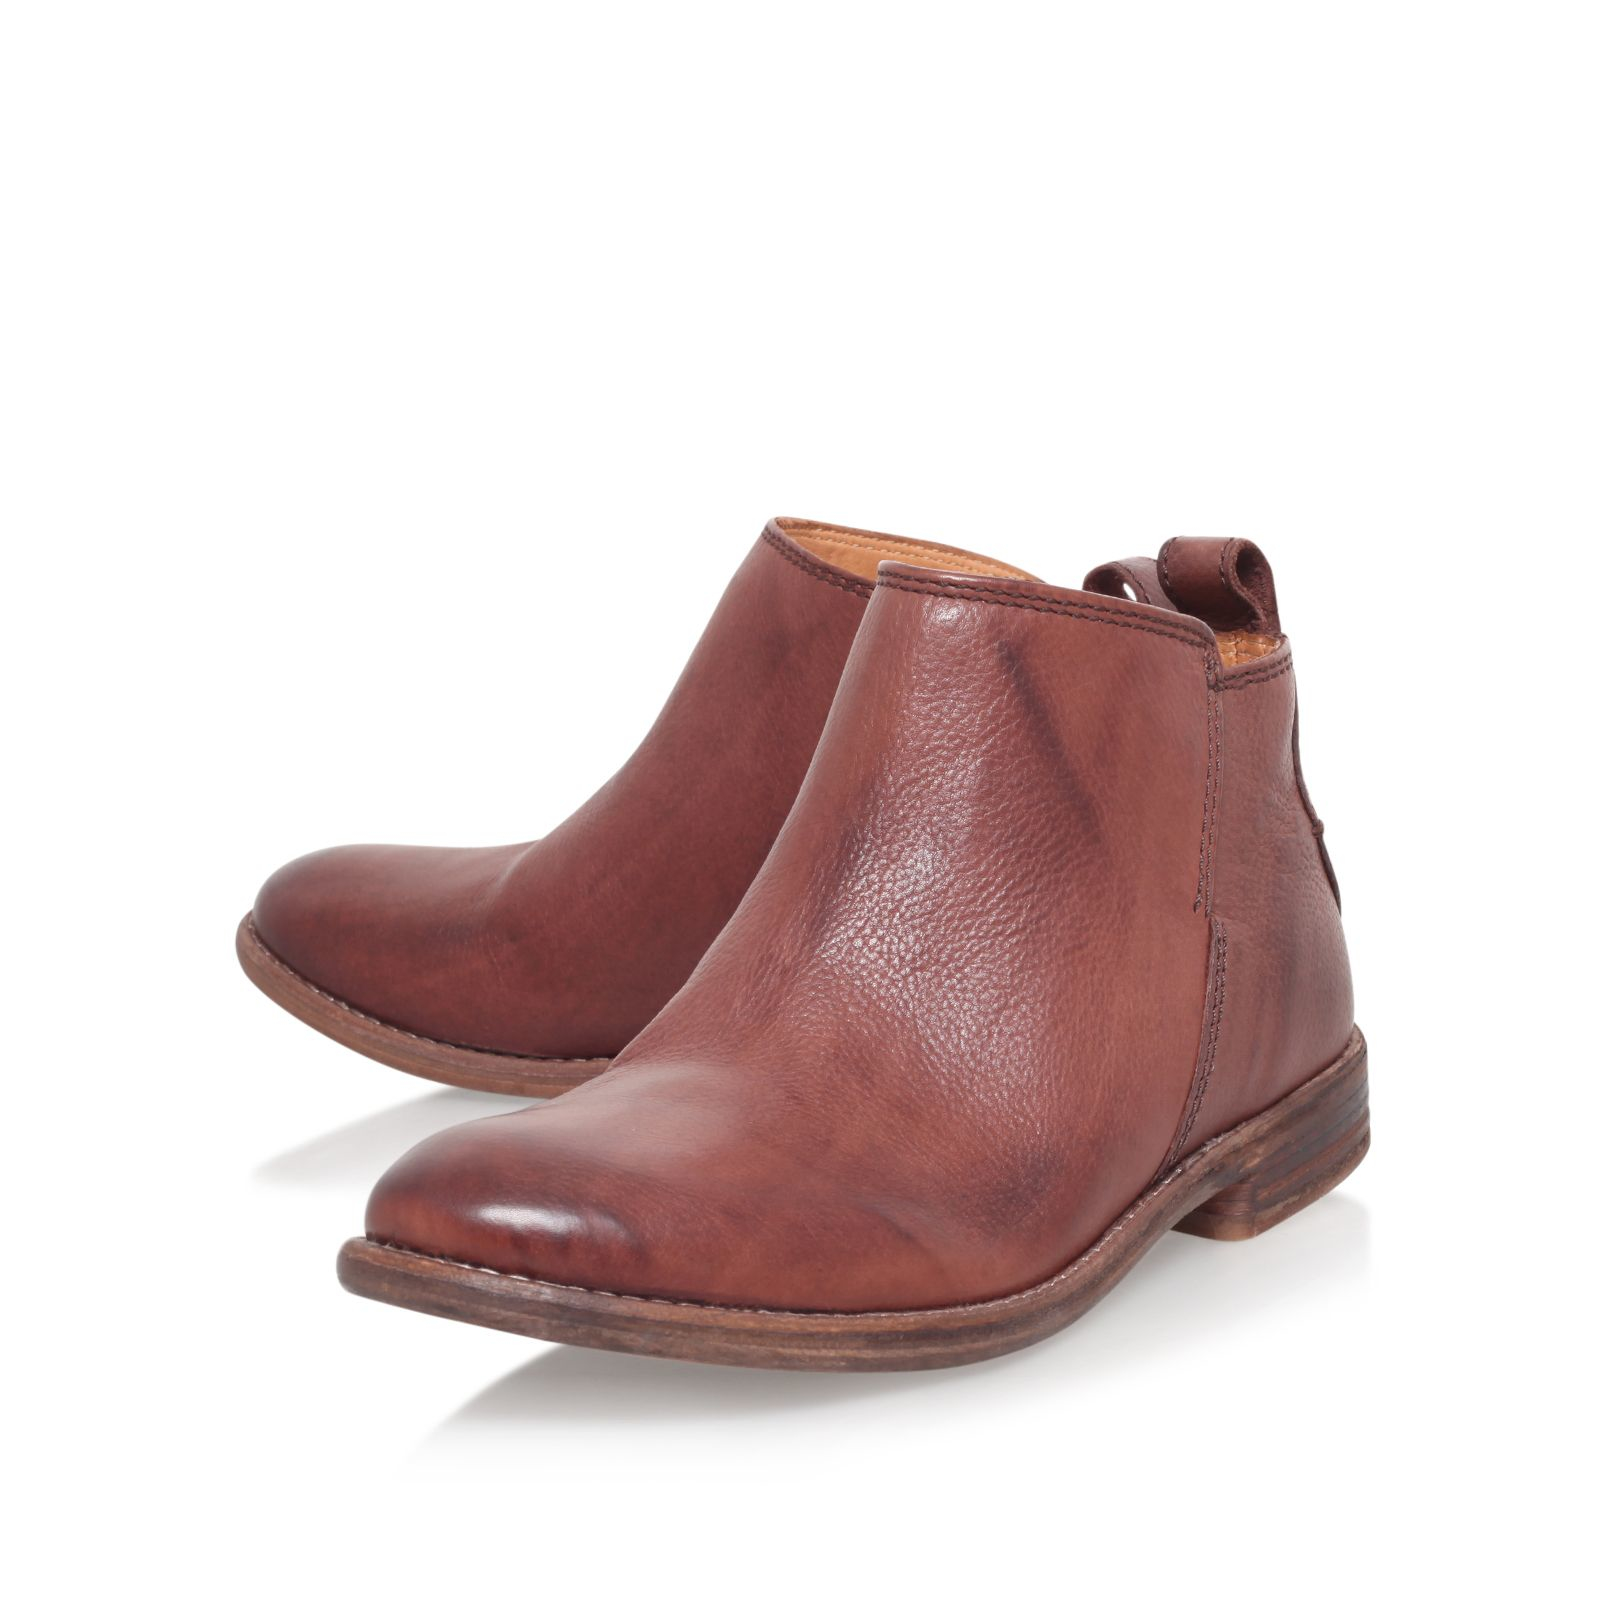 h by hudson revelin flat ankle boots in brown lyst